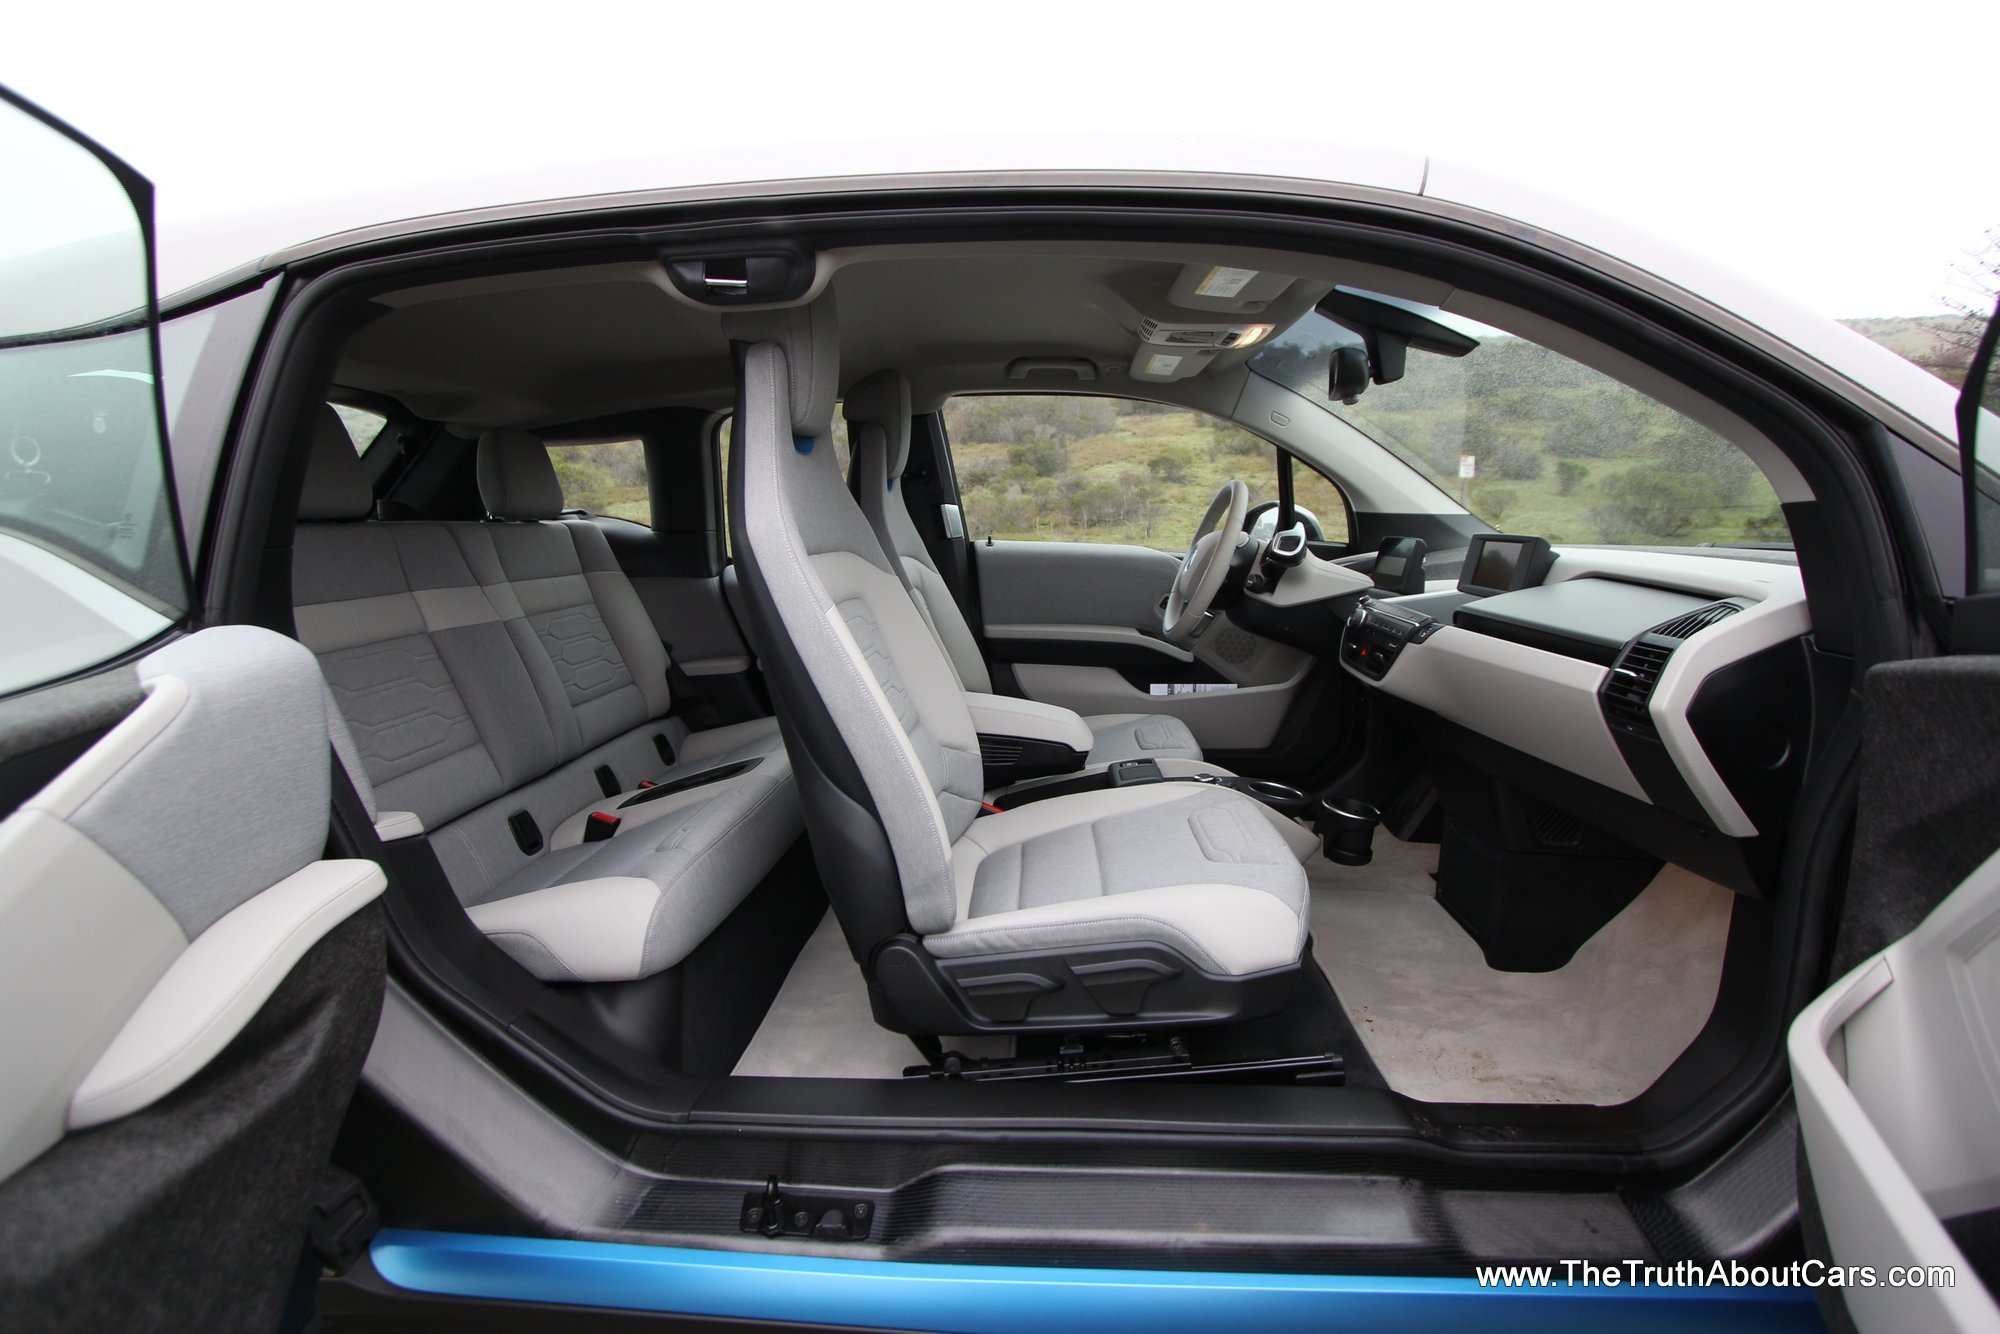 Latest 2015 Bmw I3 Range Extender Exterior 004 The Truth About Cars Free Download